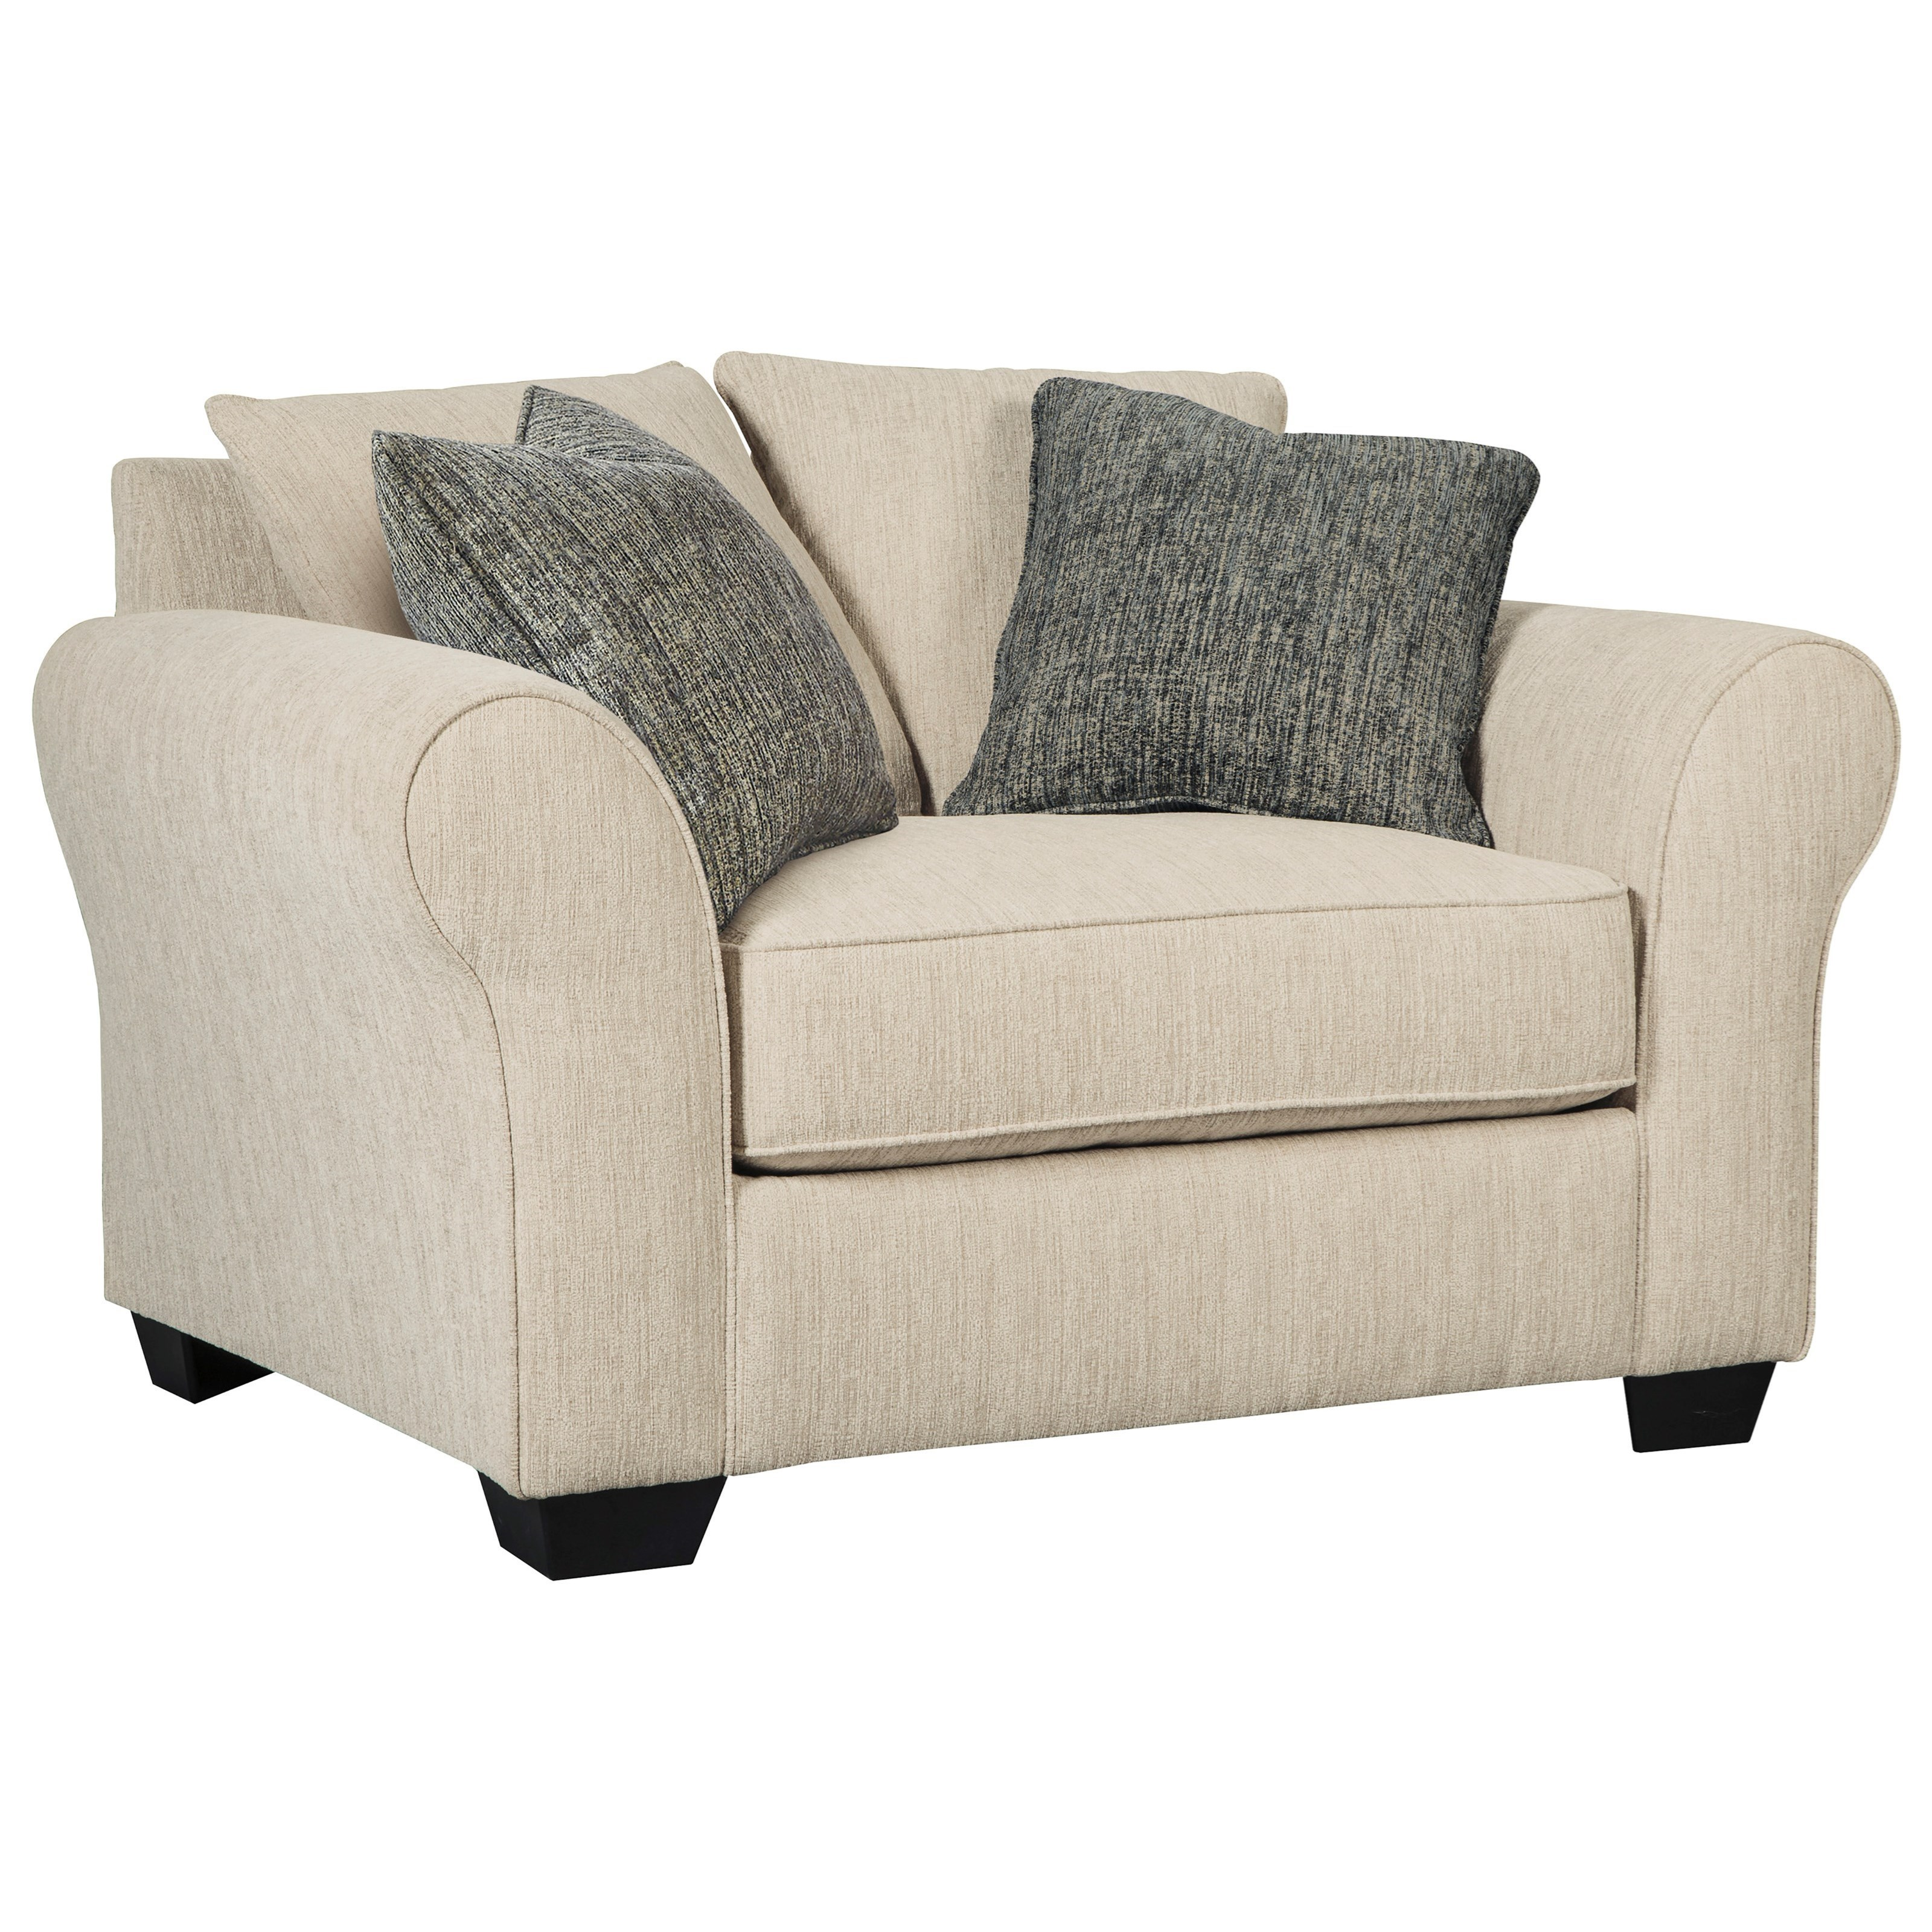 Beautiful Chair And A Half Silsbee W Large Rolled Arms Reversible Ultraplush Seat Cushion Throughout Inspiration